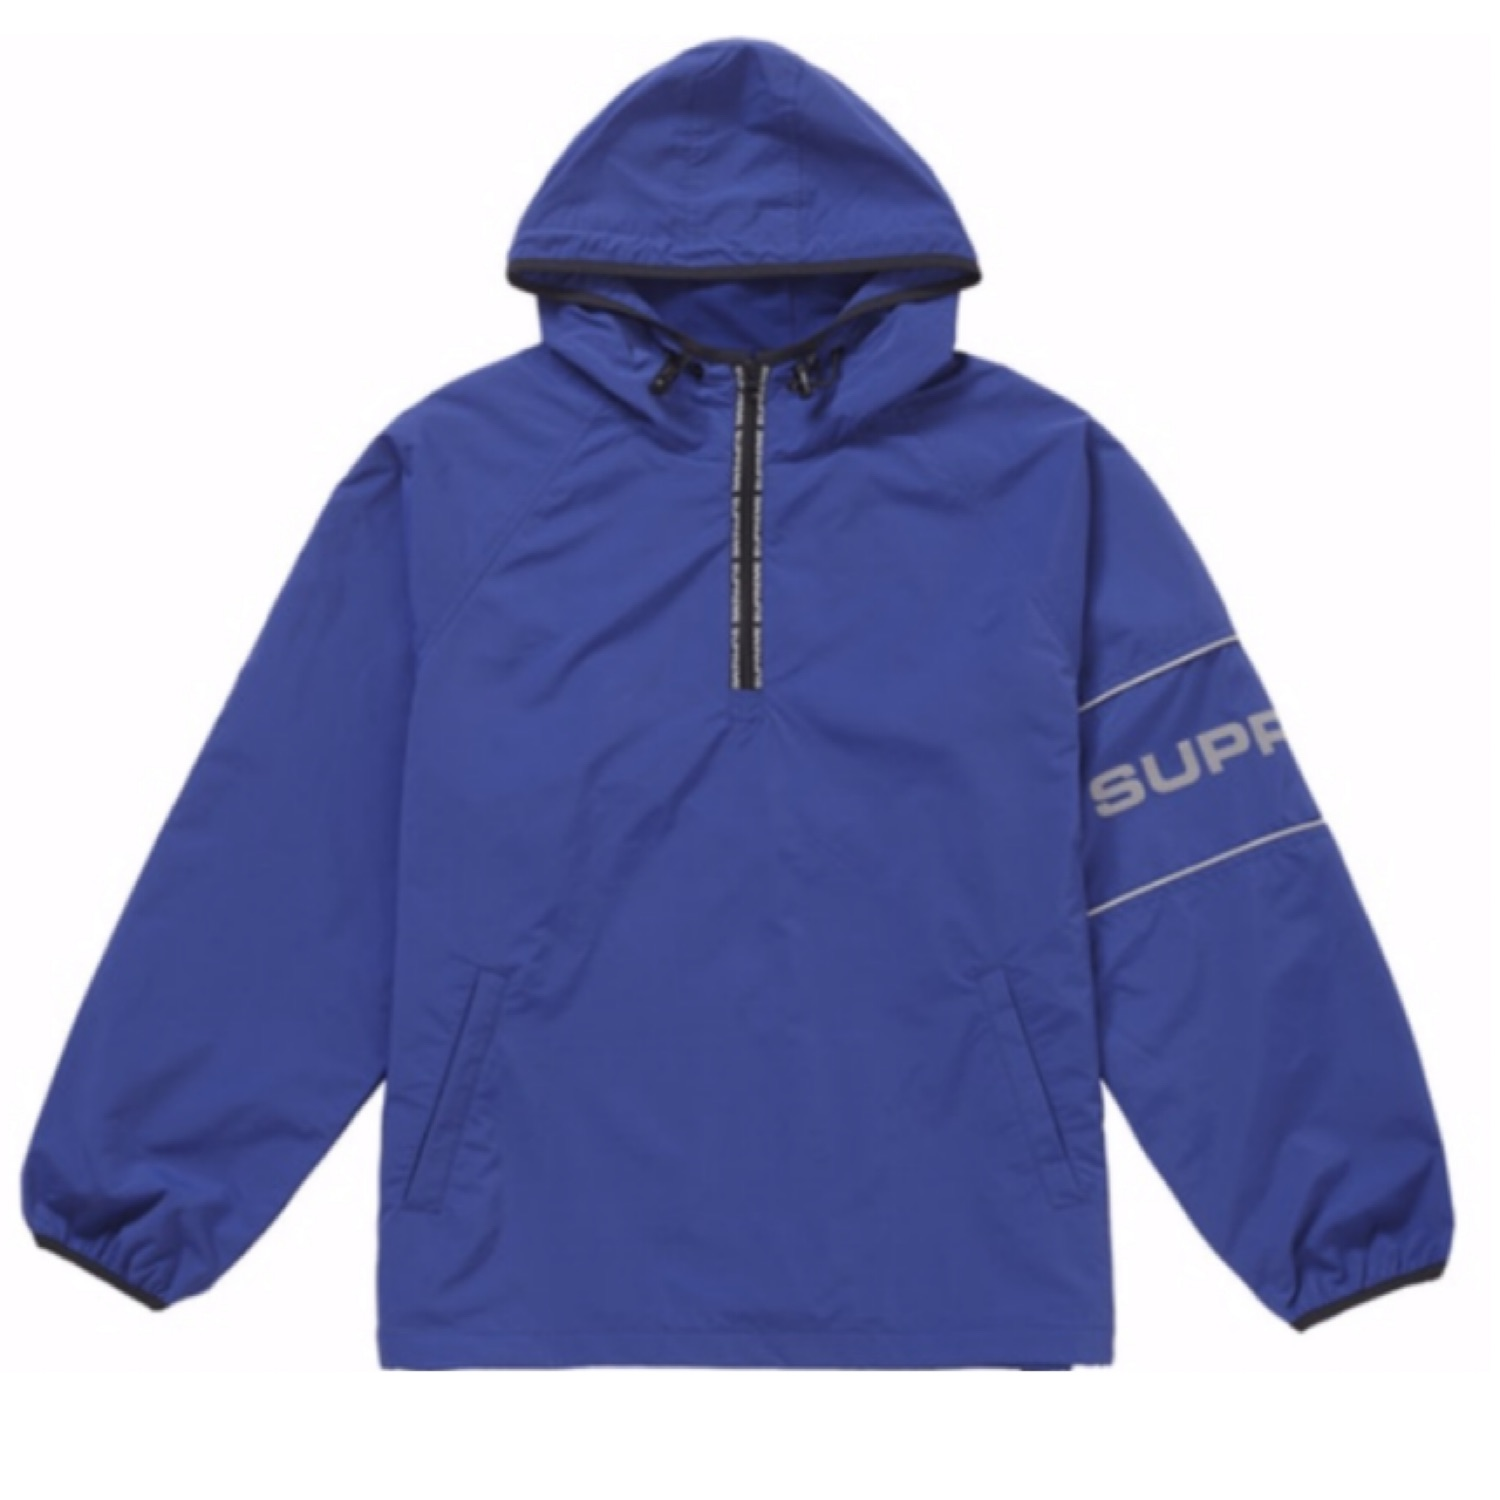 Supreme Nylon Ripstop Hooded Pullover Jacket